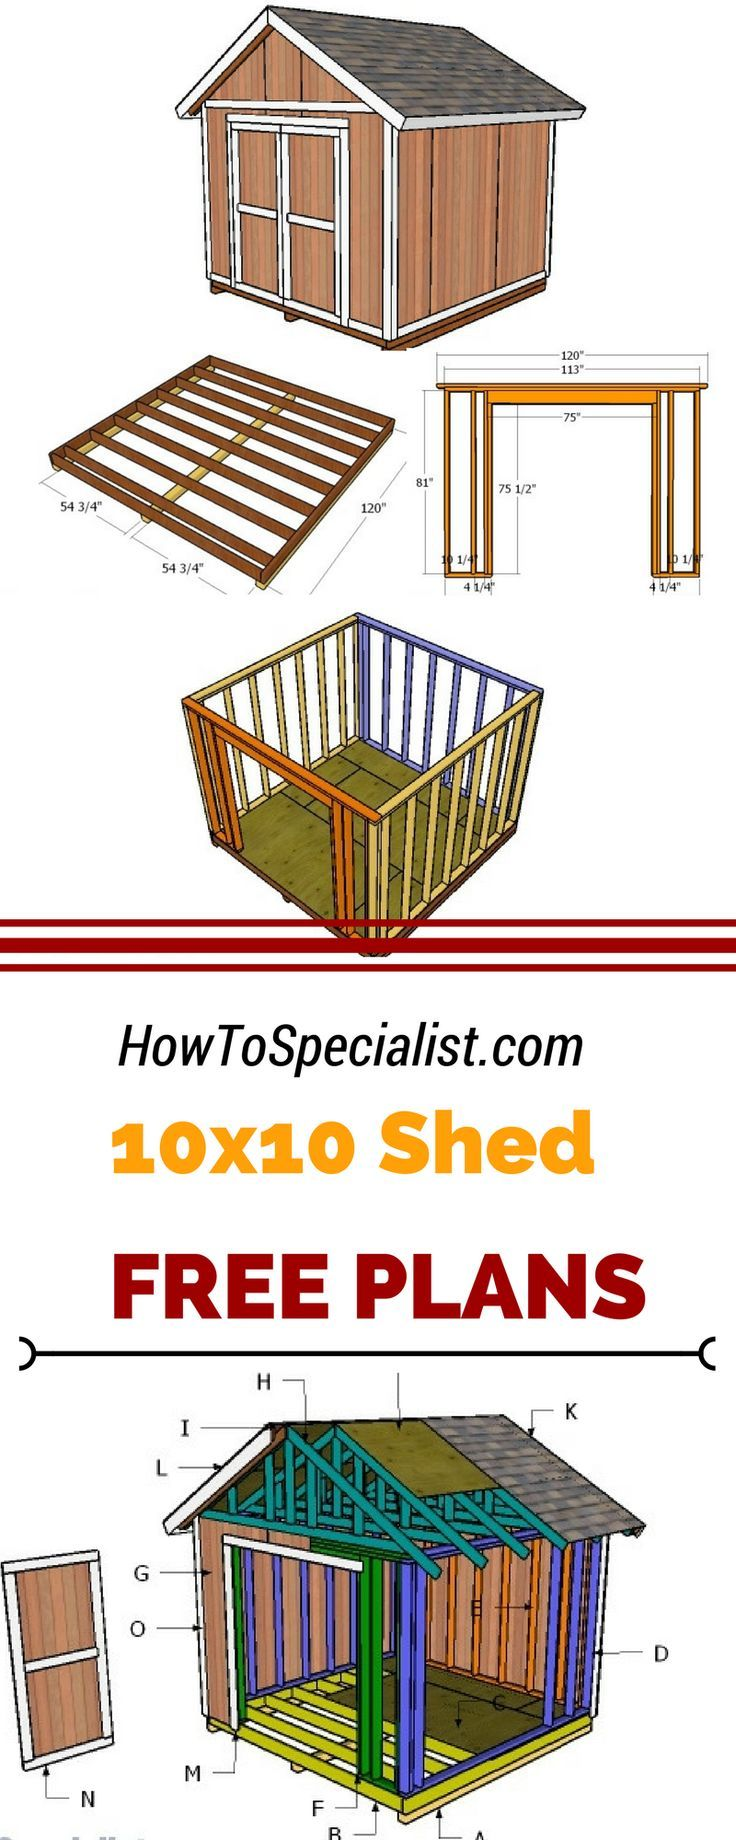 If you need more storage space in the backyard, you should check out 10x10 shed plans. Learn how to build a small garden shed using my step by step plans and instructions. http://howtospecialist.com #diy #shed